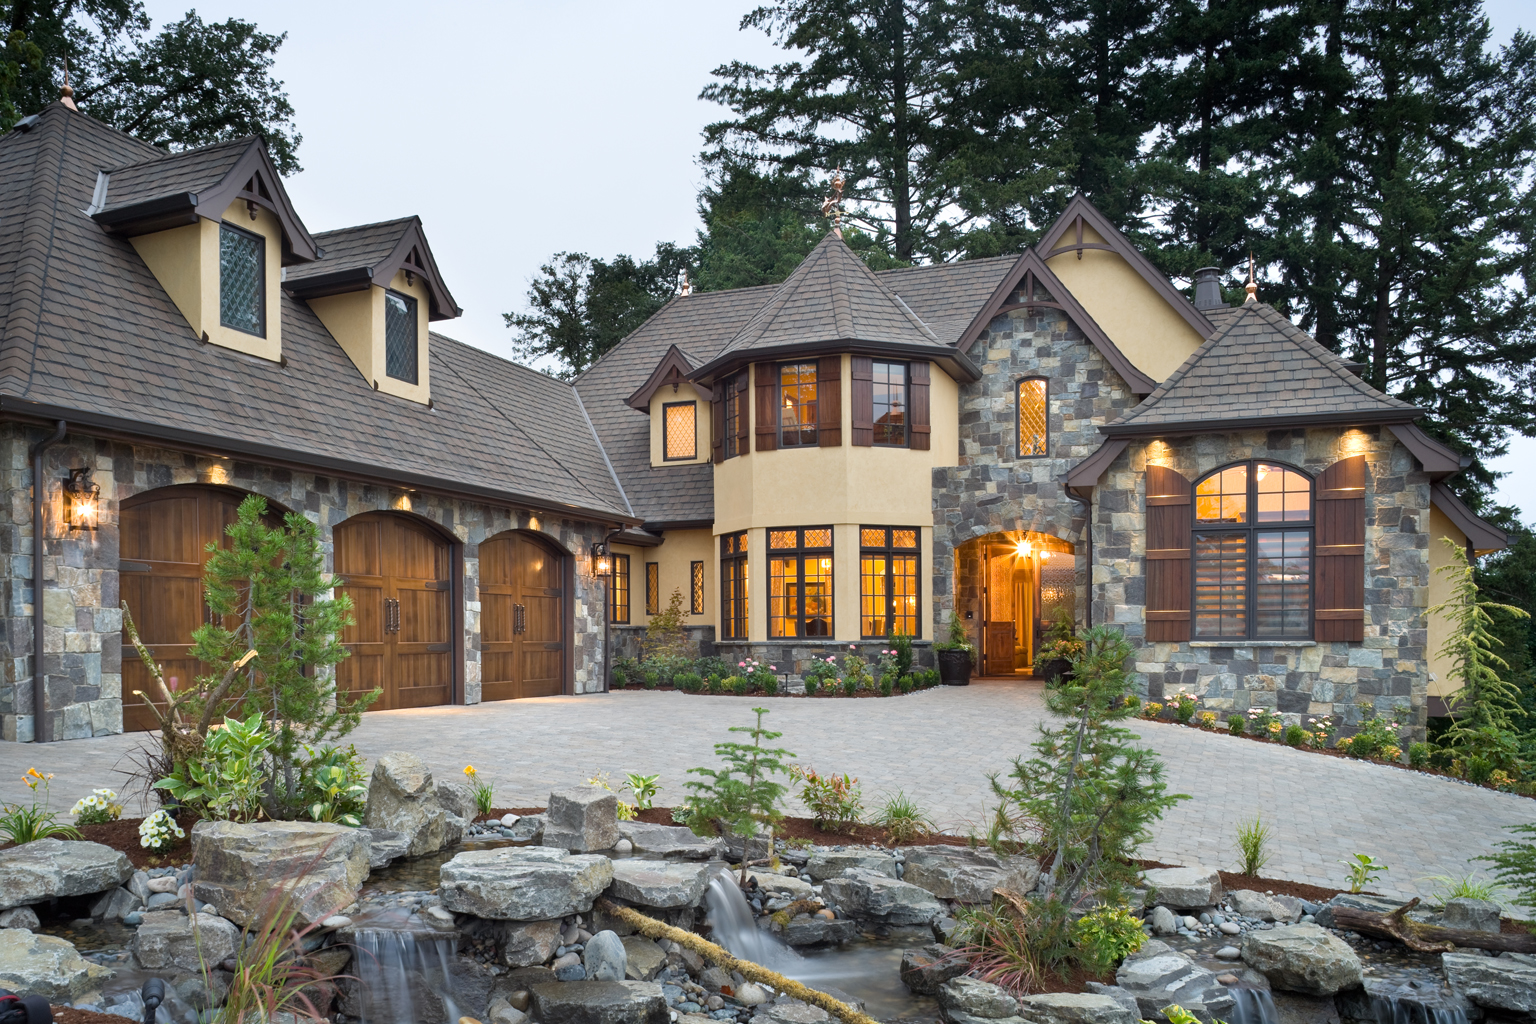 Best 4000 Sq Ft Canadian Home - 2470-amda-4096-2012  Picture_121681.jpg